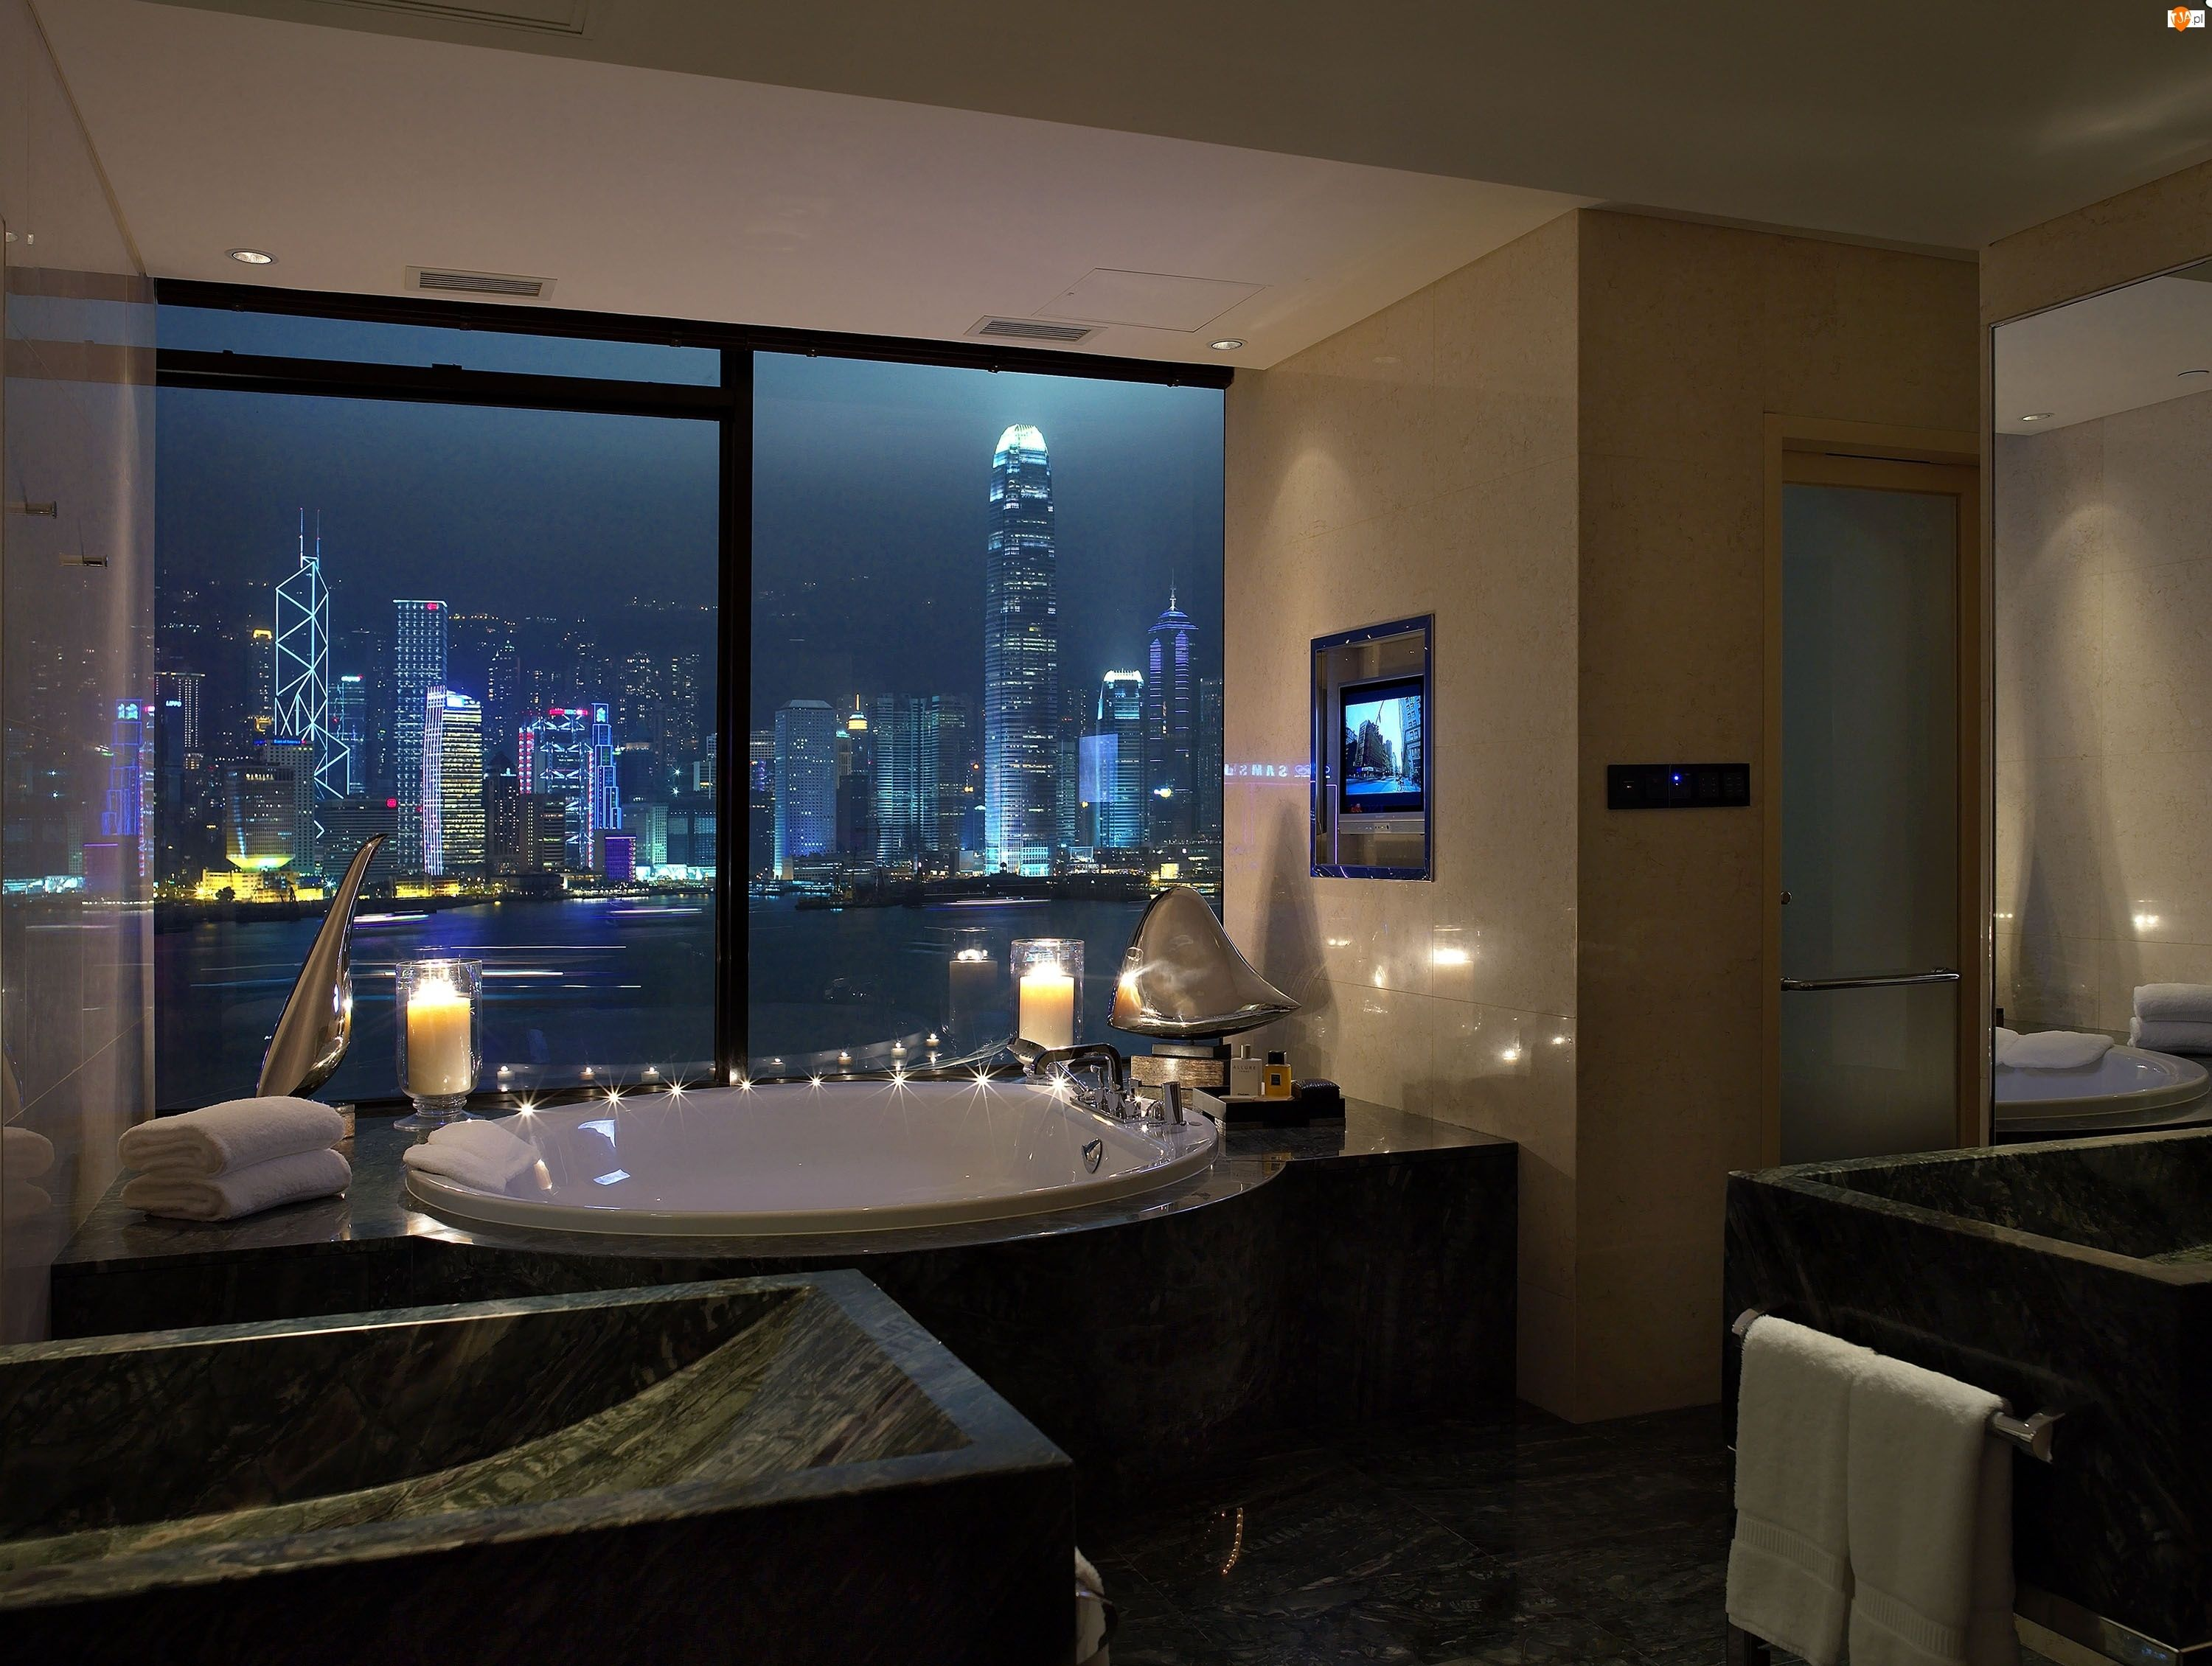 Bathroom at the Intercontinental Hong Kong | Foreign Story Locations ...